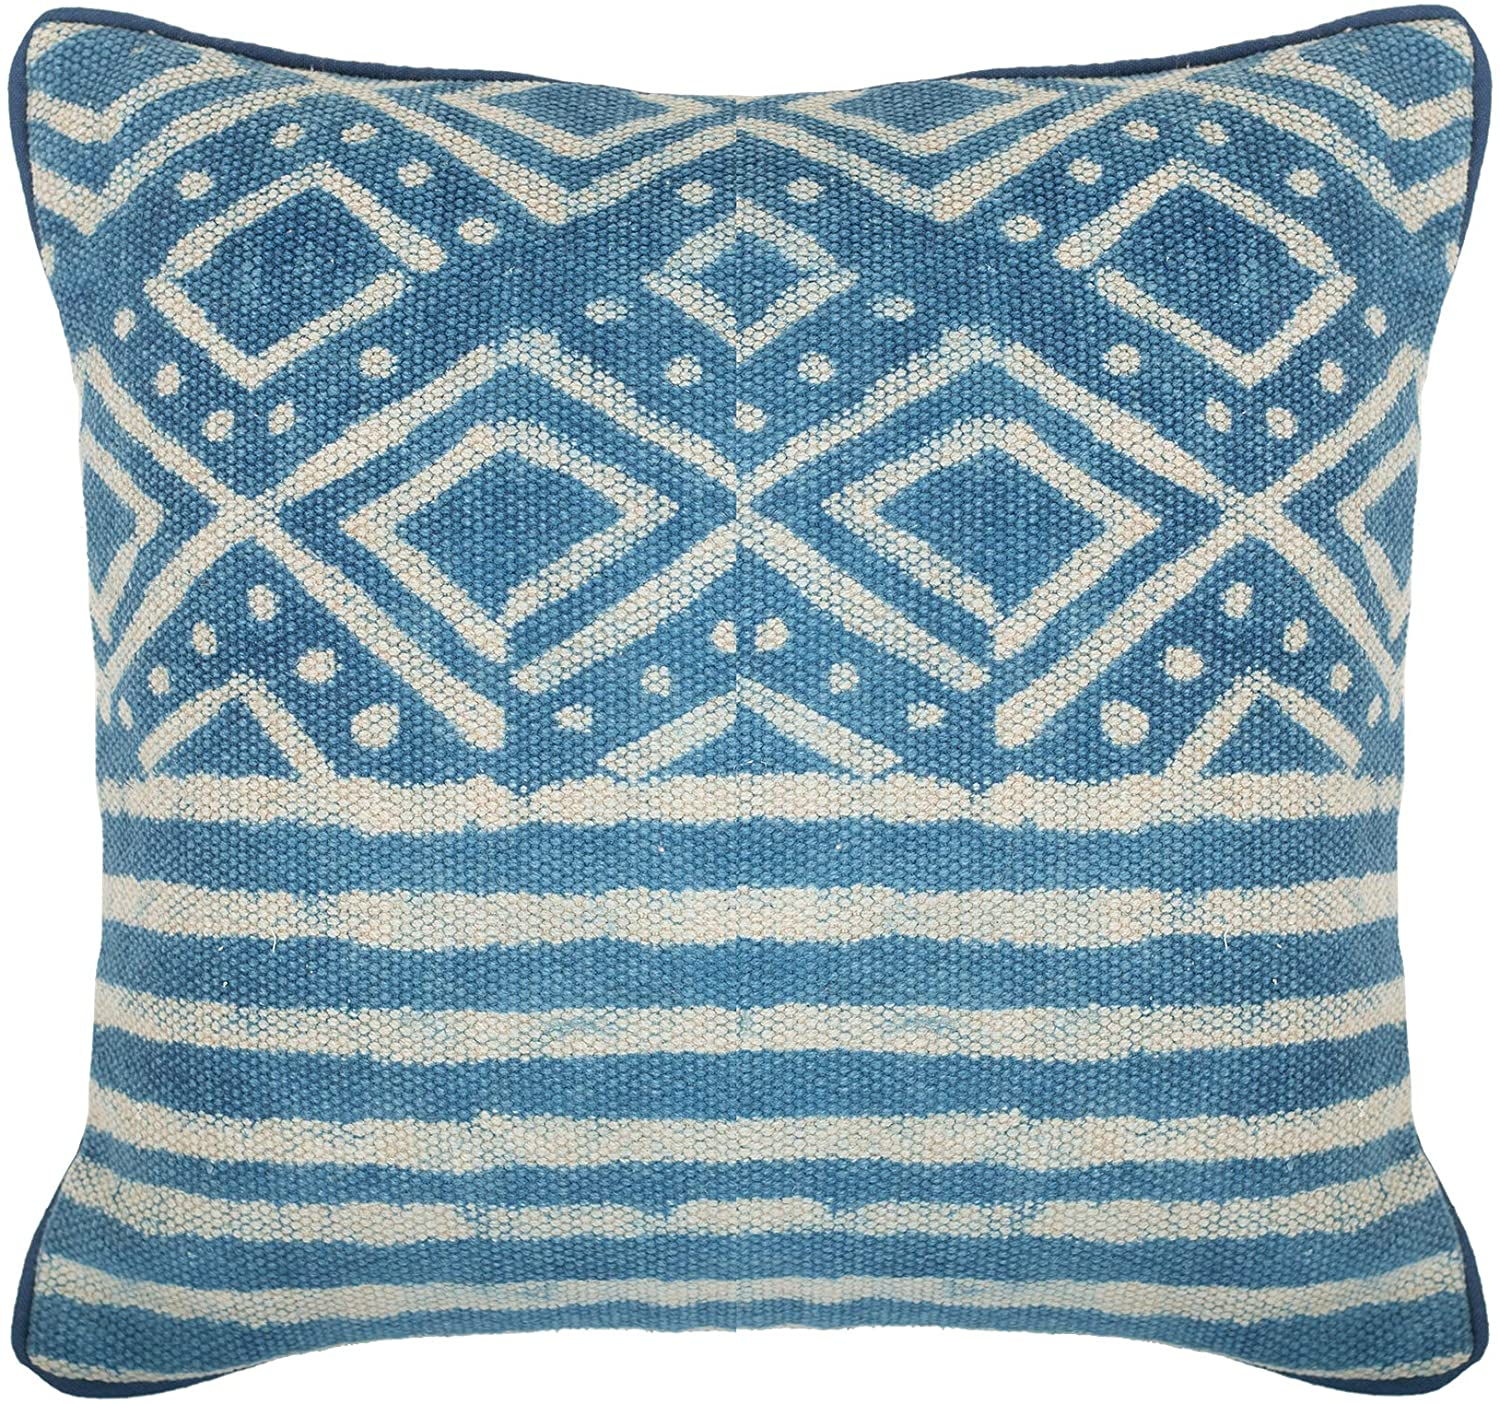 Felicity Weave Indigo Blue Throw Pillow Cover - Handmade Decorative Throw Pillow in Indigo Blue and Cream   Designer Quality Textured Throw Pillow for Couch, Sofa, Bed or Chair   18x18 Inch